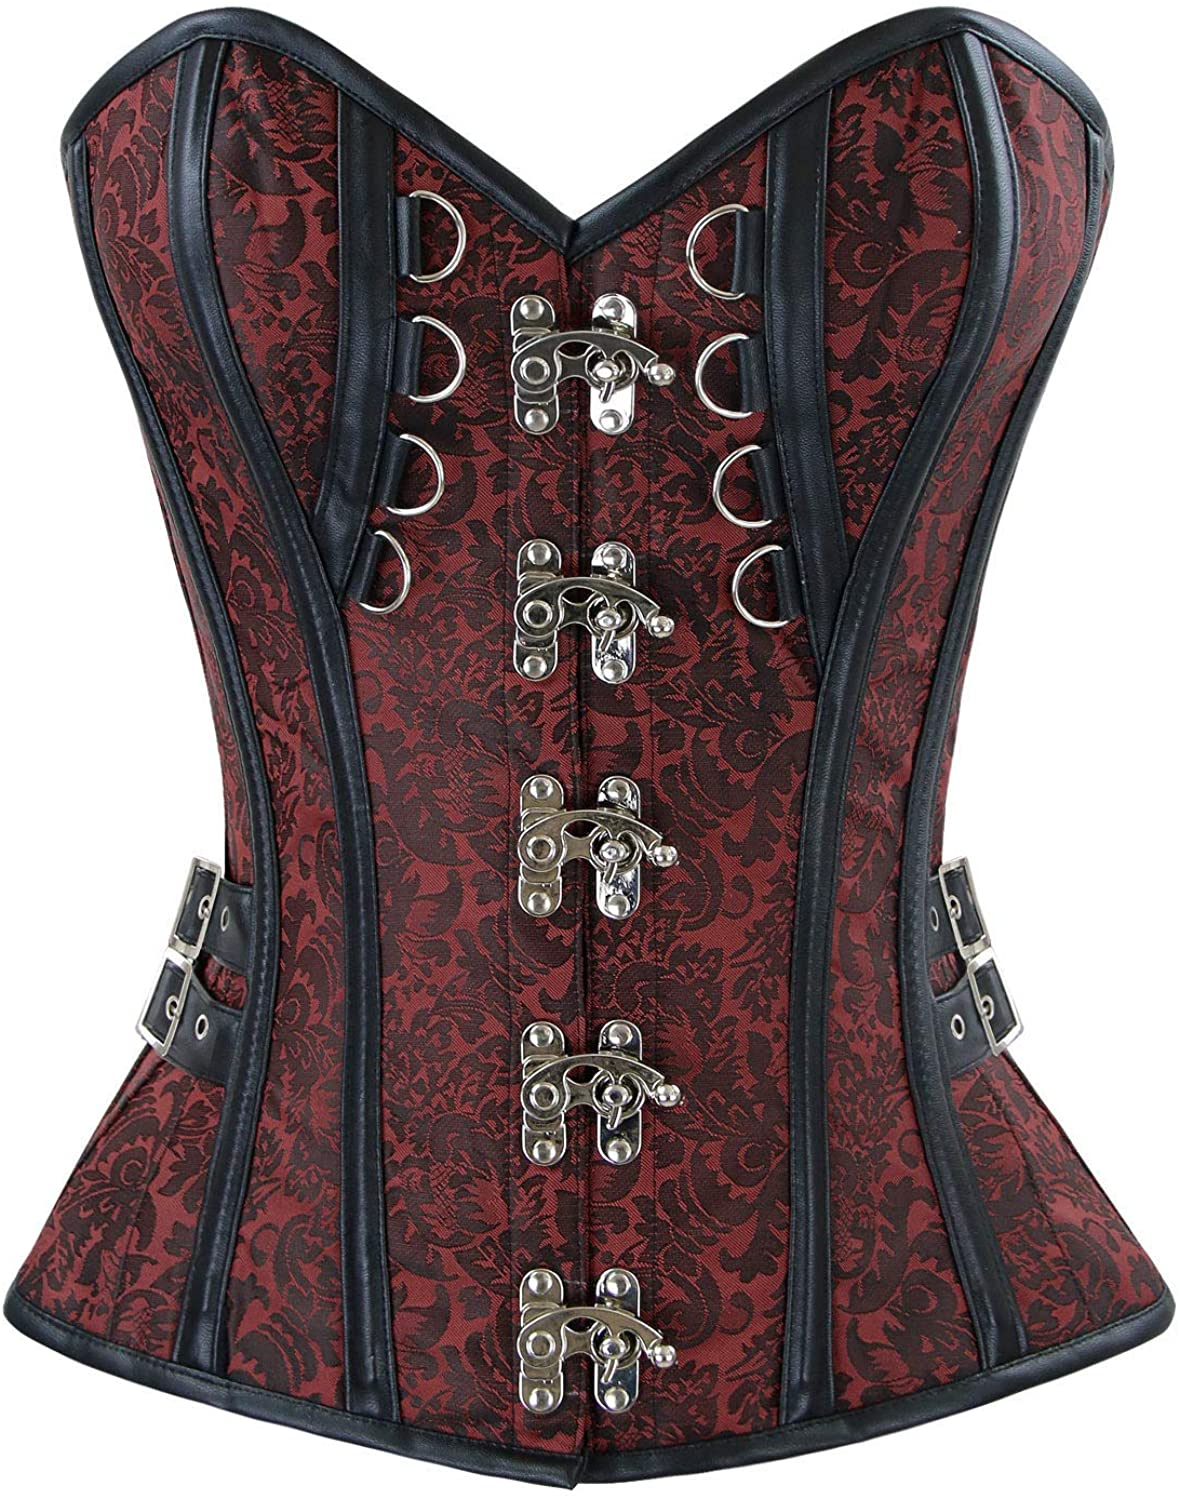 Charmian Women's Steampunk Gothic Brocade Spiral Steel Boned Corset with Buckles